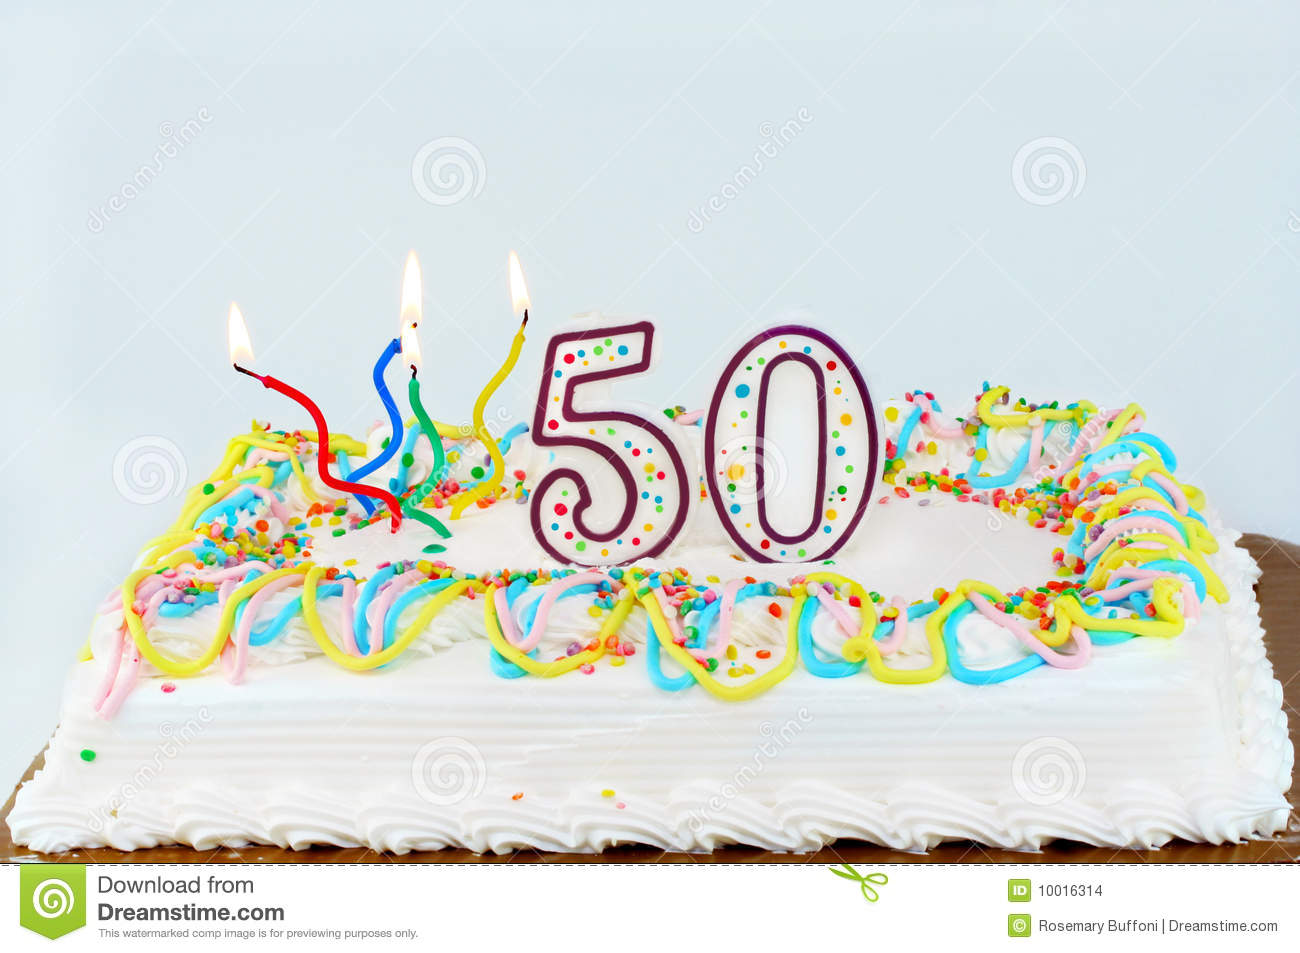 Marvelous 50Th Birthday Cake Stock Photo Image Of Food Numbers 10016314 Personalised Birthday Cards Sponlily Jamesorg